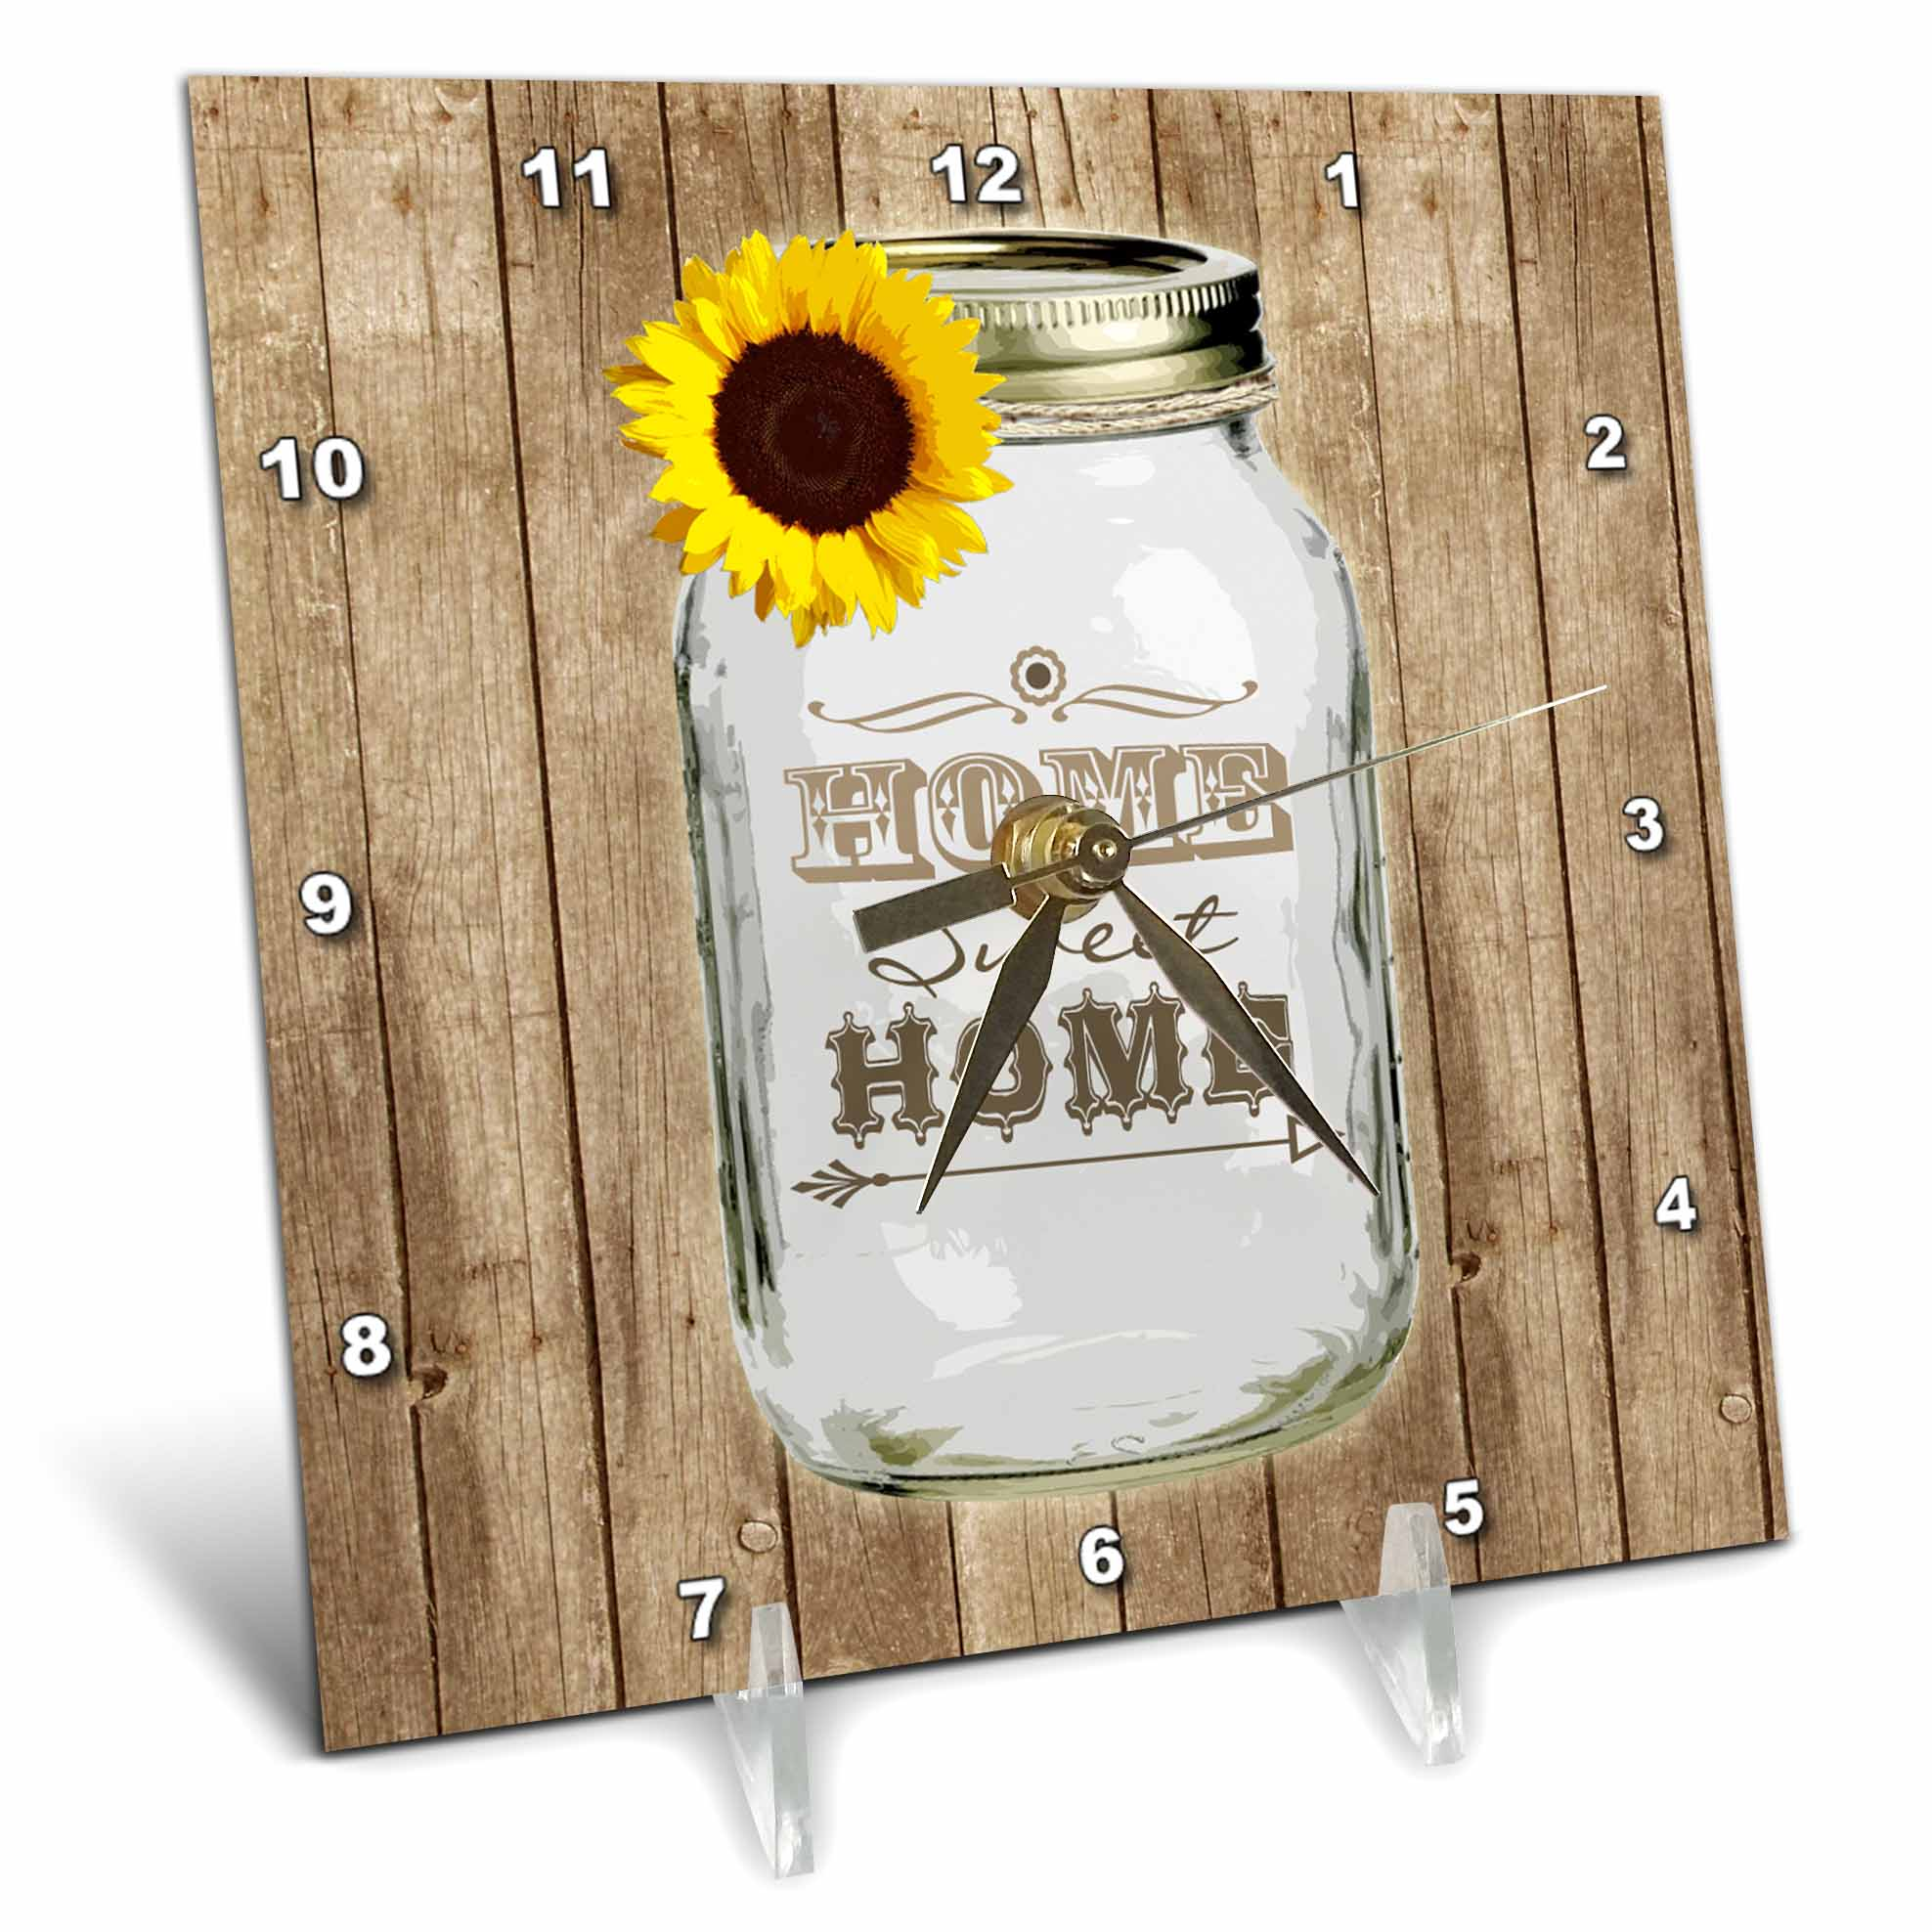 3dRose Country Rustic Mason Jar with Sunflower Home Sweet Home, Desk Clock, 6 by 6-inch by 3dRose